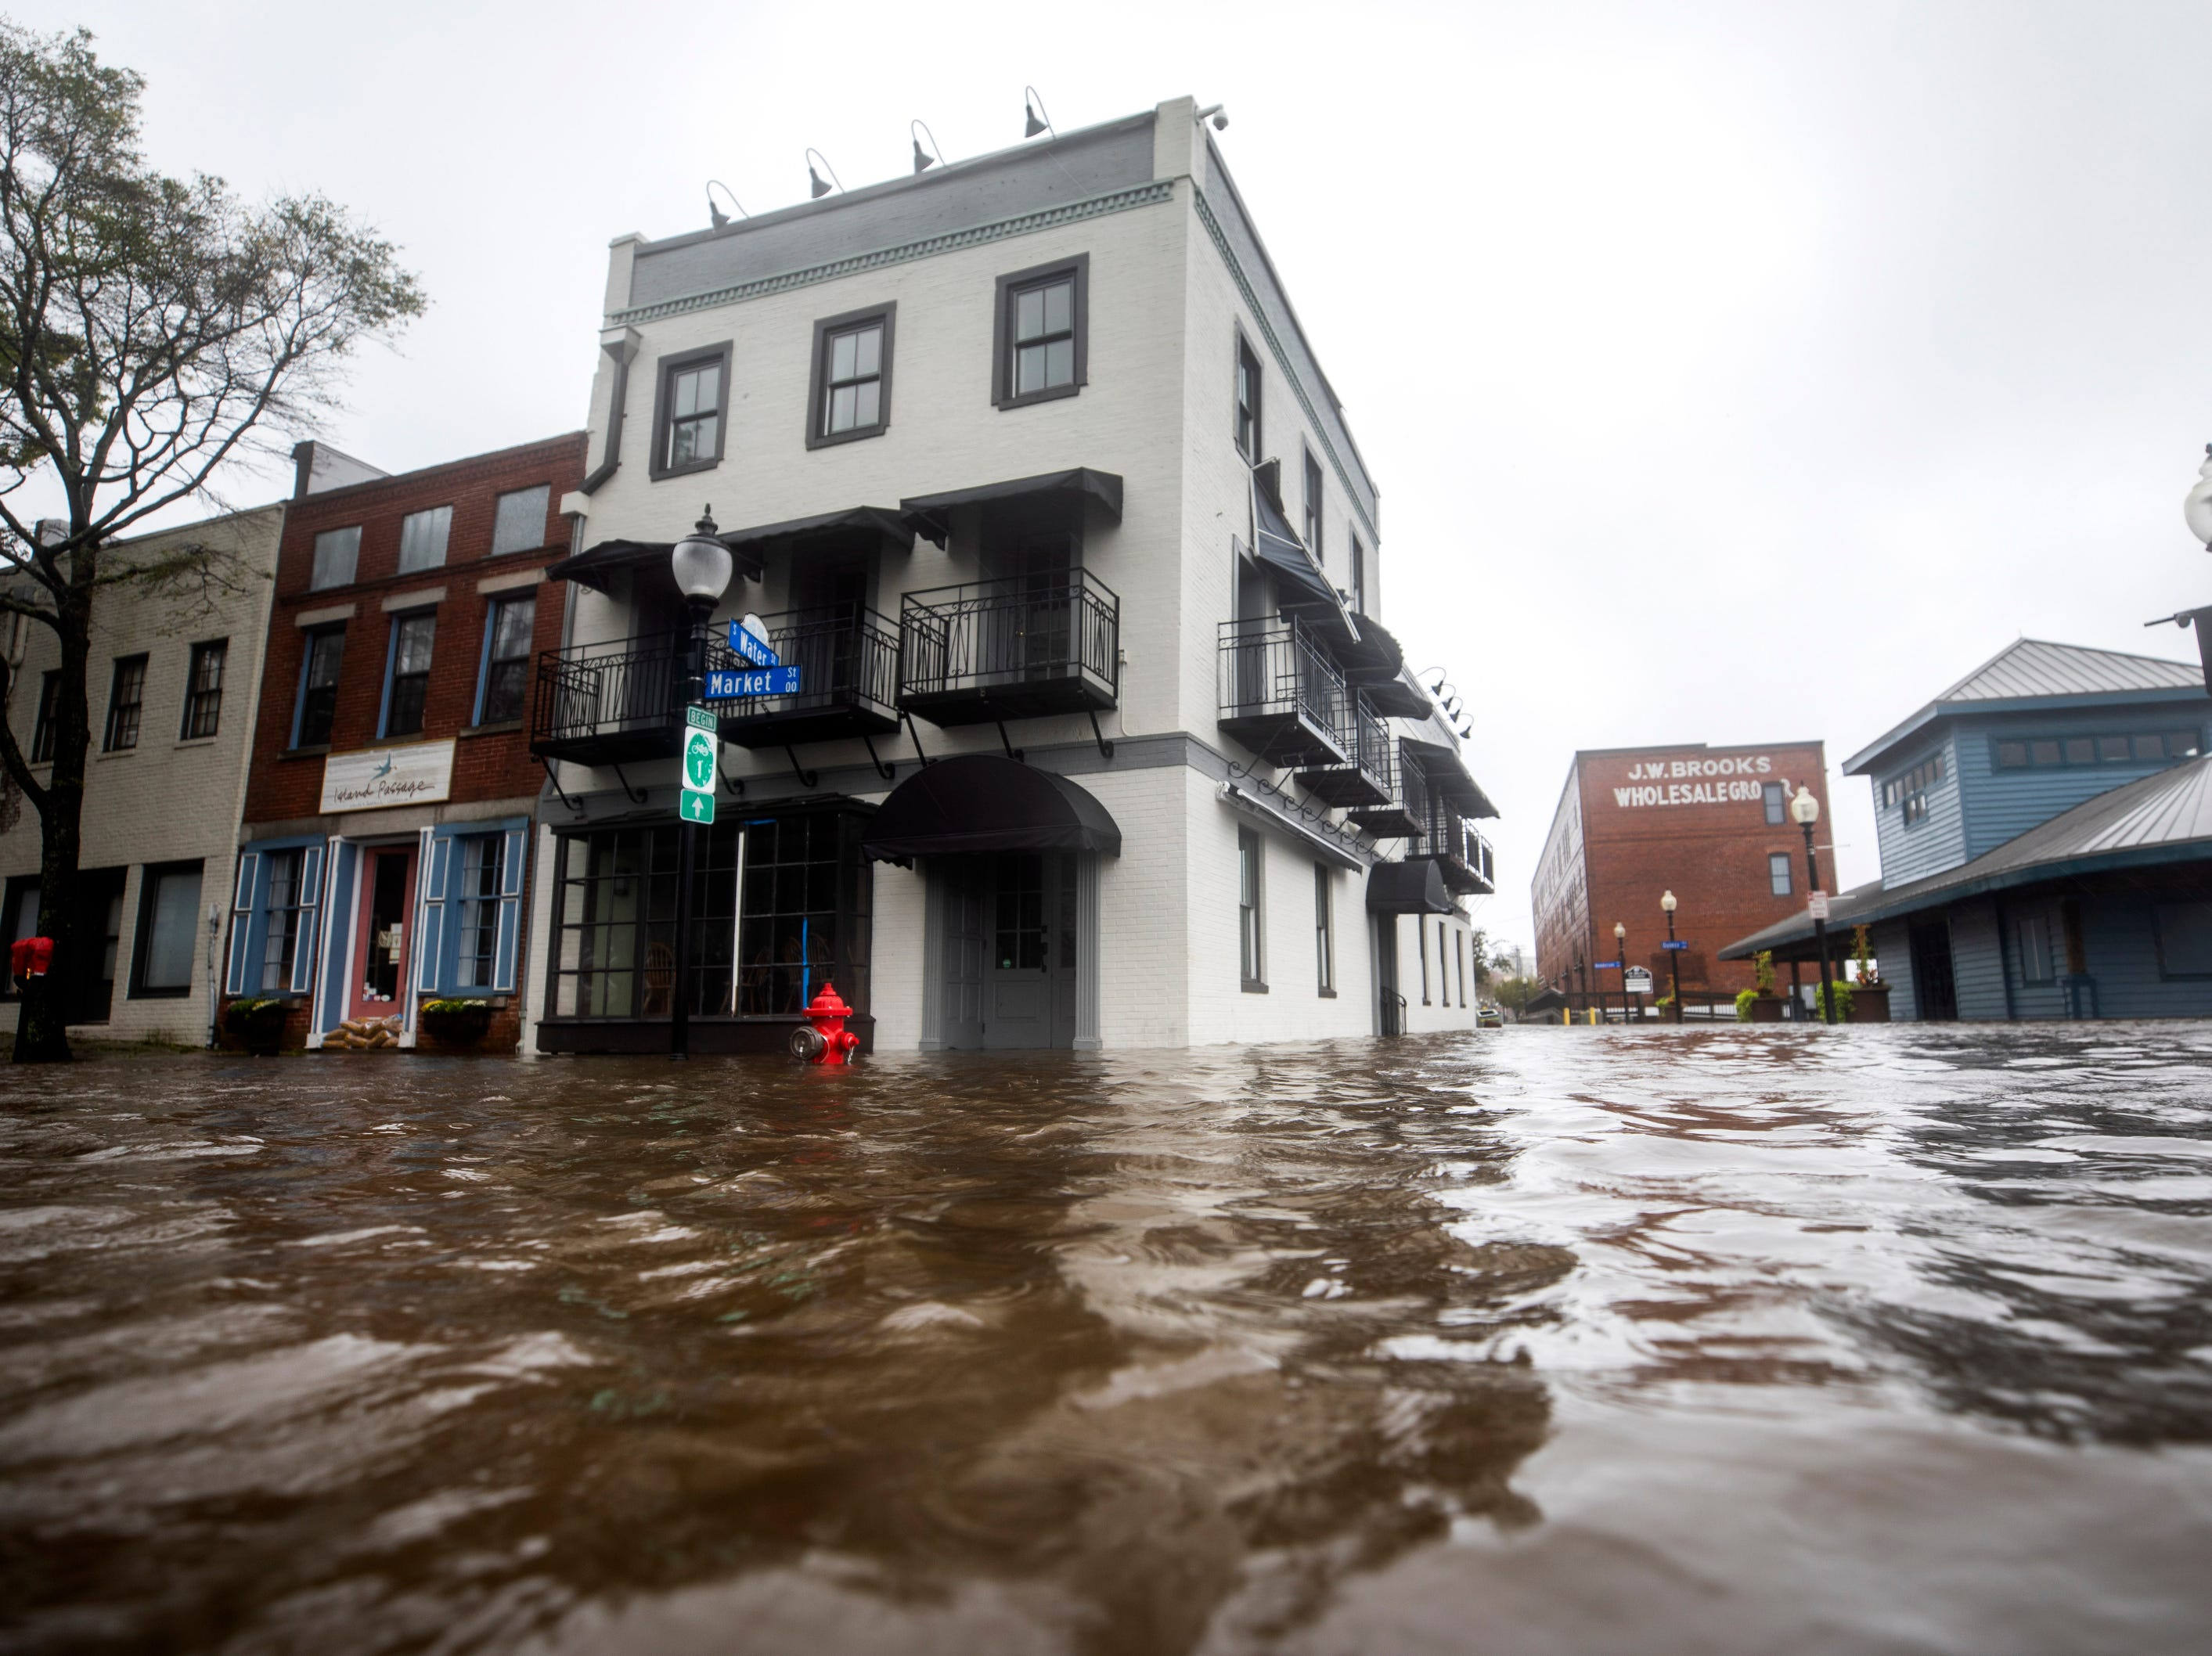 High waters flood Market and Water Streets as Hurricane Florence comes ashore in Wilmington, N.C., Friday afternoon. Hurricane Florence has been downgraded to a tropical storm on the Saffir-Simpson Hurricane Wind Scale, though is still expected to bring a storm surge with heavy flooding to the Carolinas.